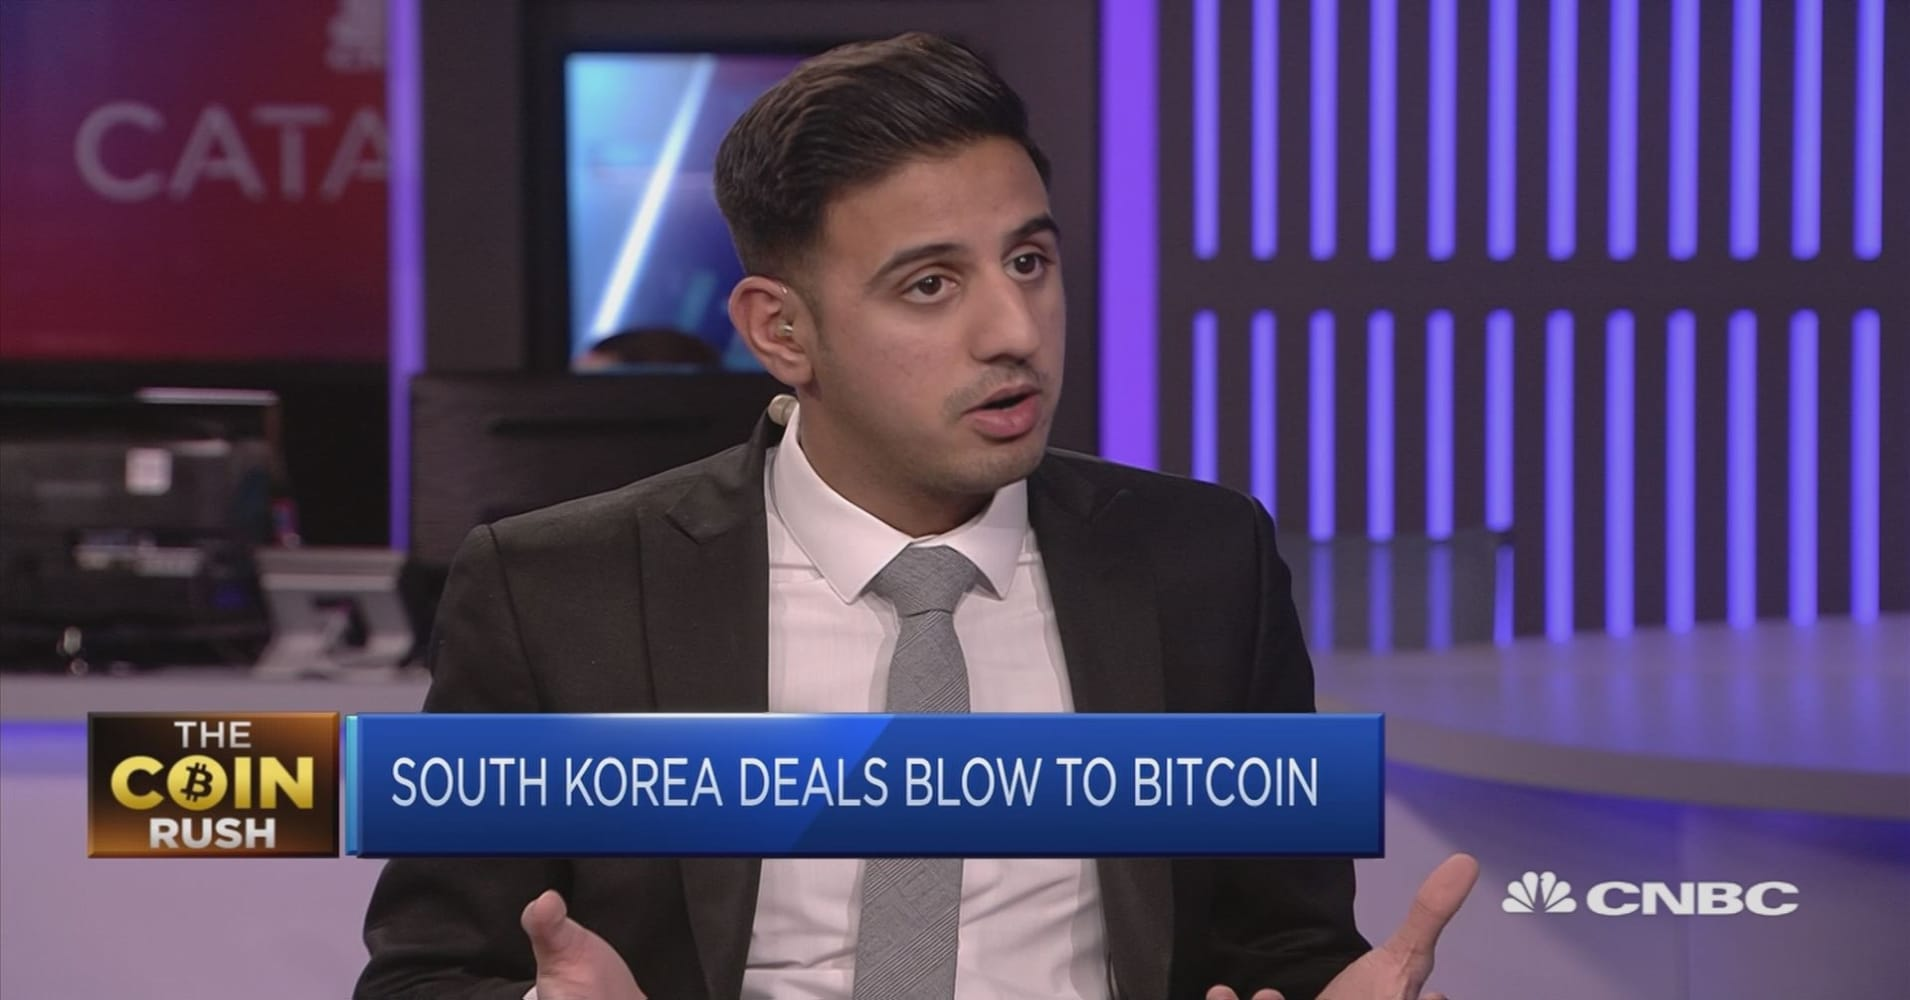 Bitcoin tumbles on talk of South Korea preparing a crypto trading ban